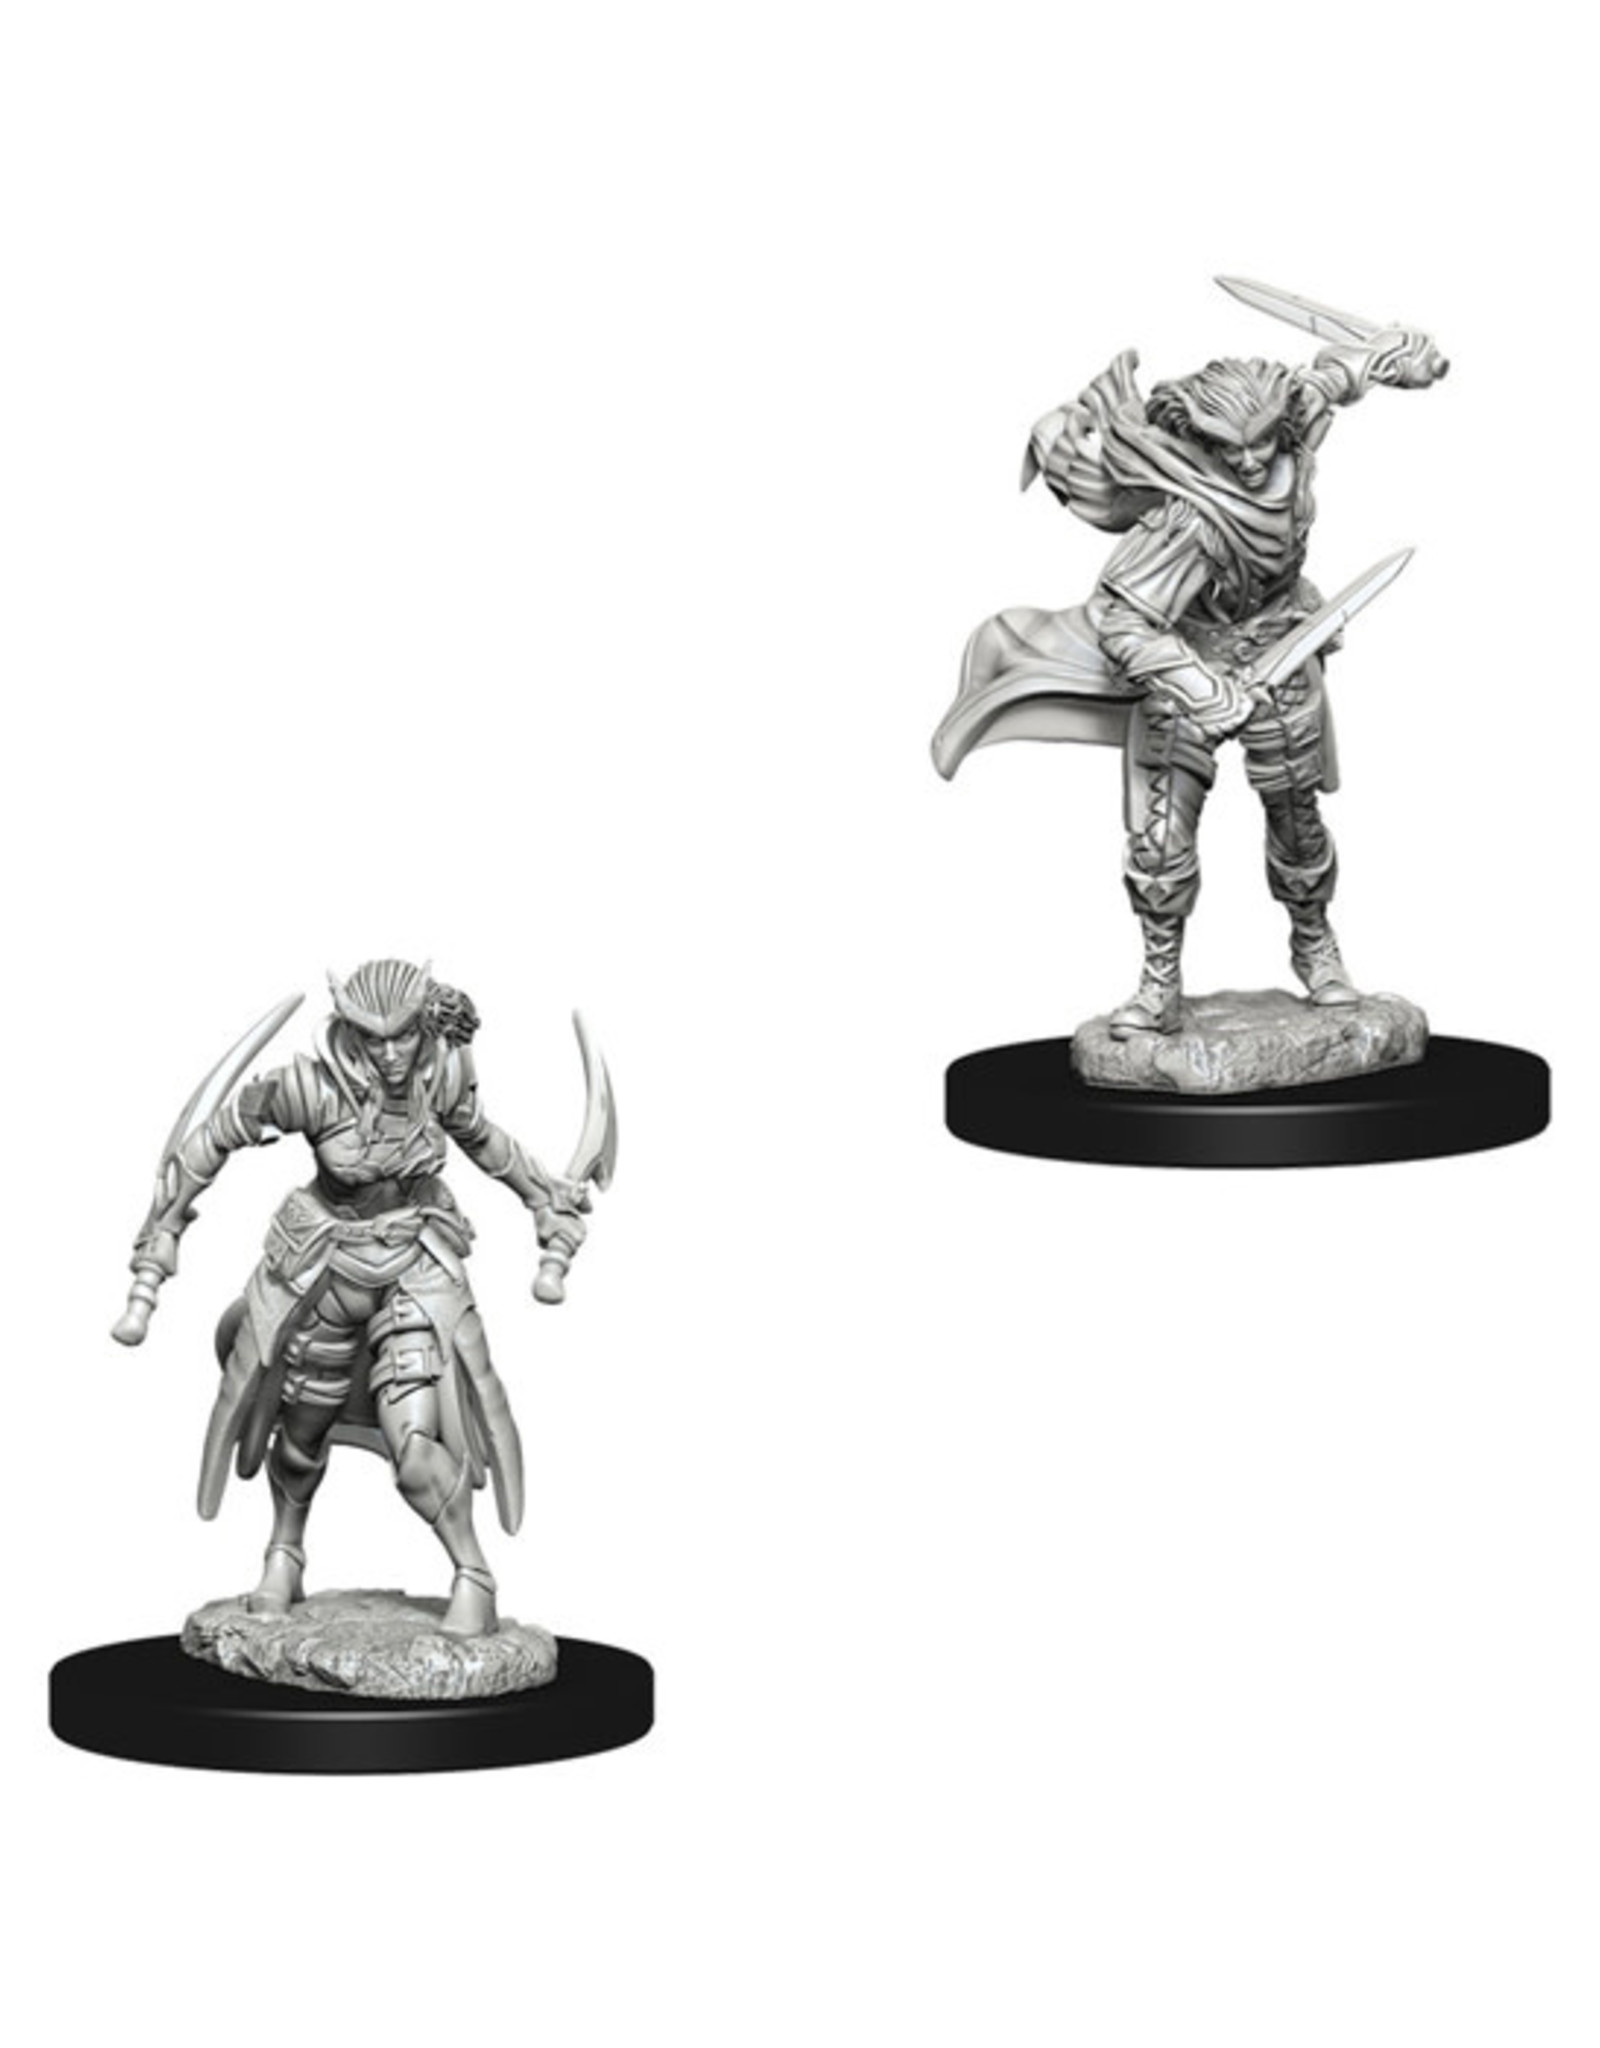 Dungeons & Dragons Dungeons & Dragons: Nolzur's - Tiefling Female Rogue